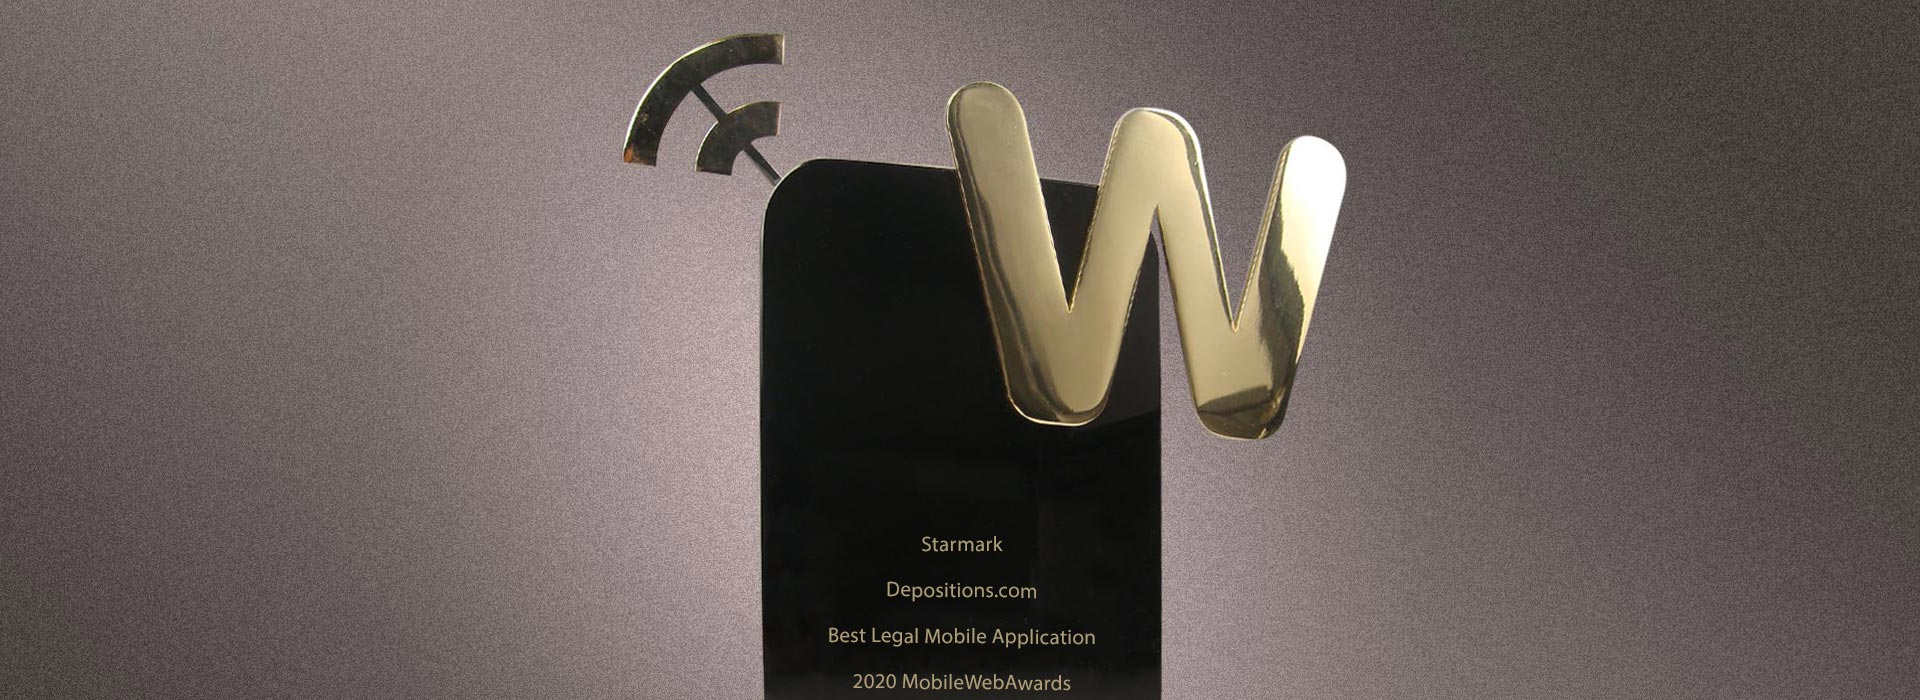 Depositions.com wins Mobile Web Award for Best Legal Mobile Application